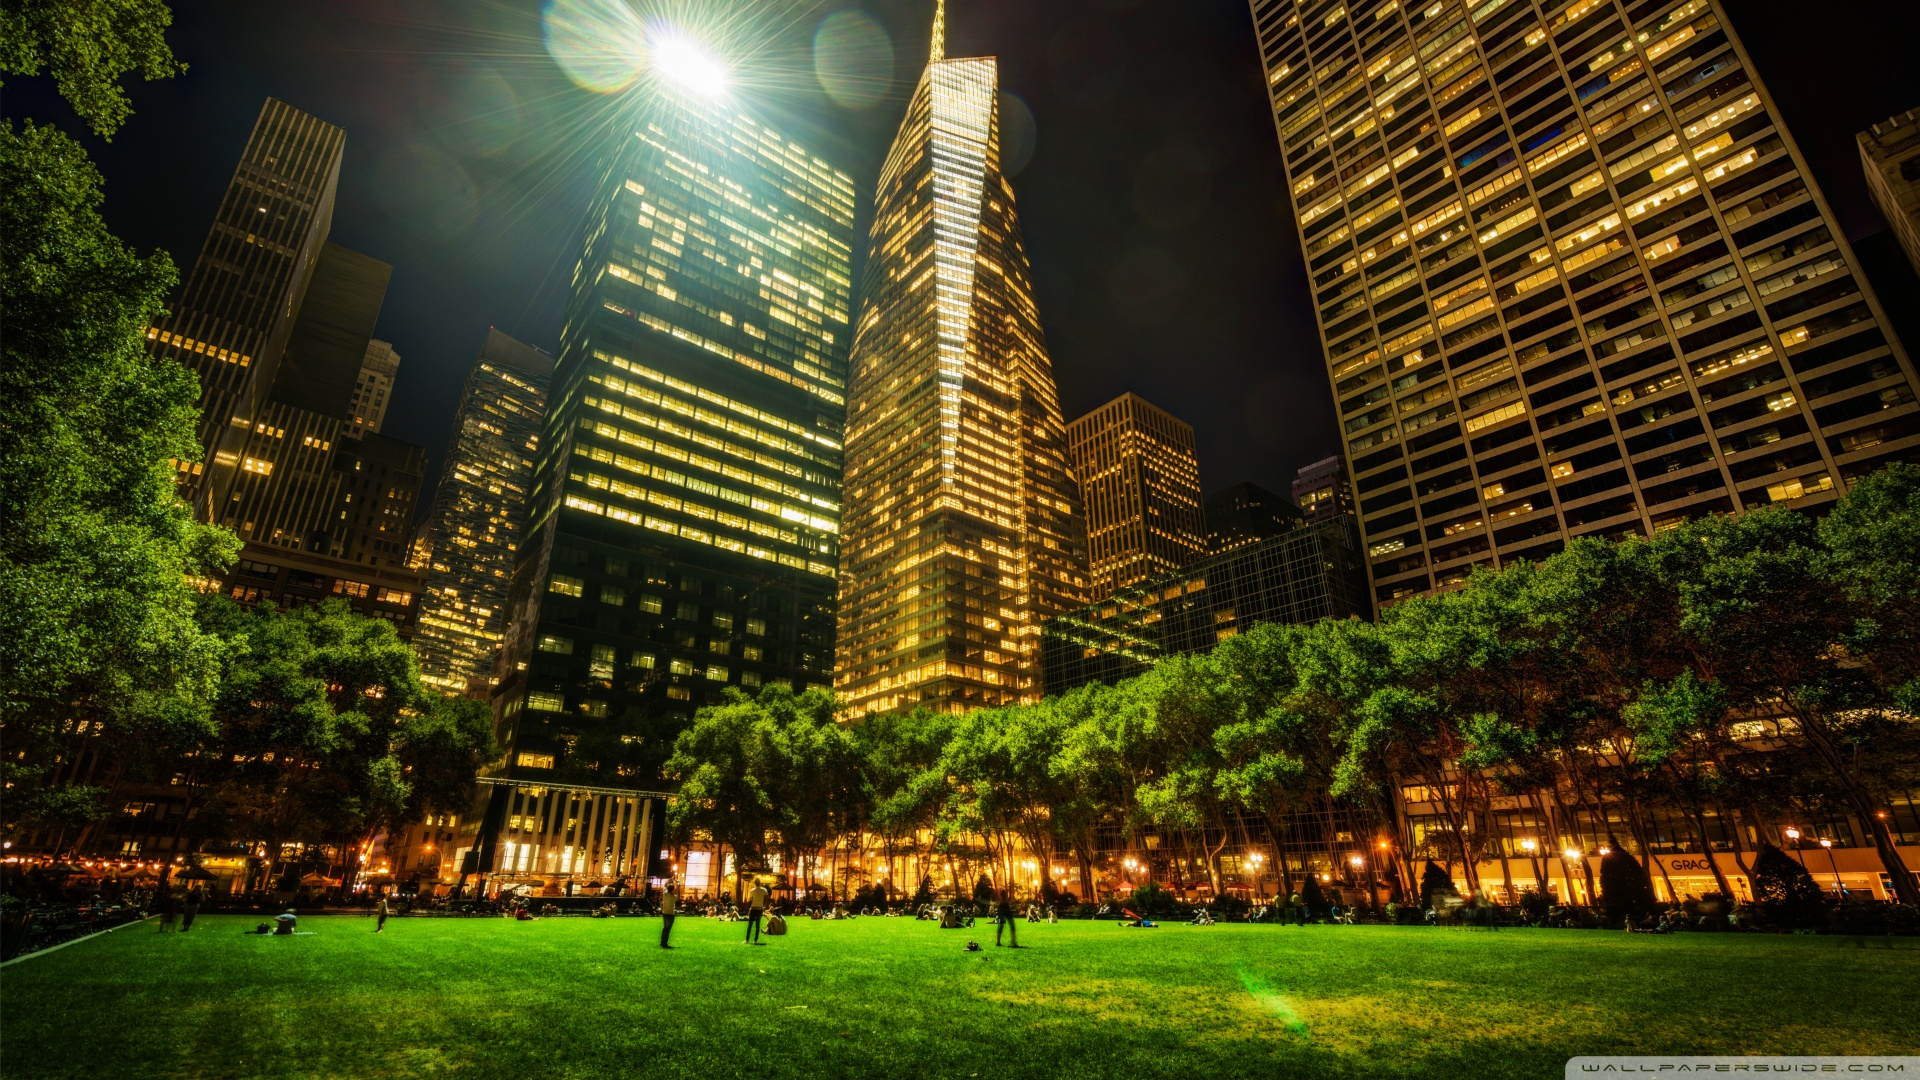 bryant_park_in_new_york_city-wallpaper-1920x1080